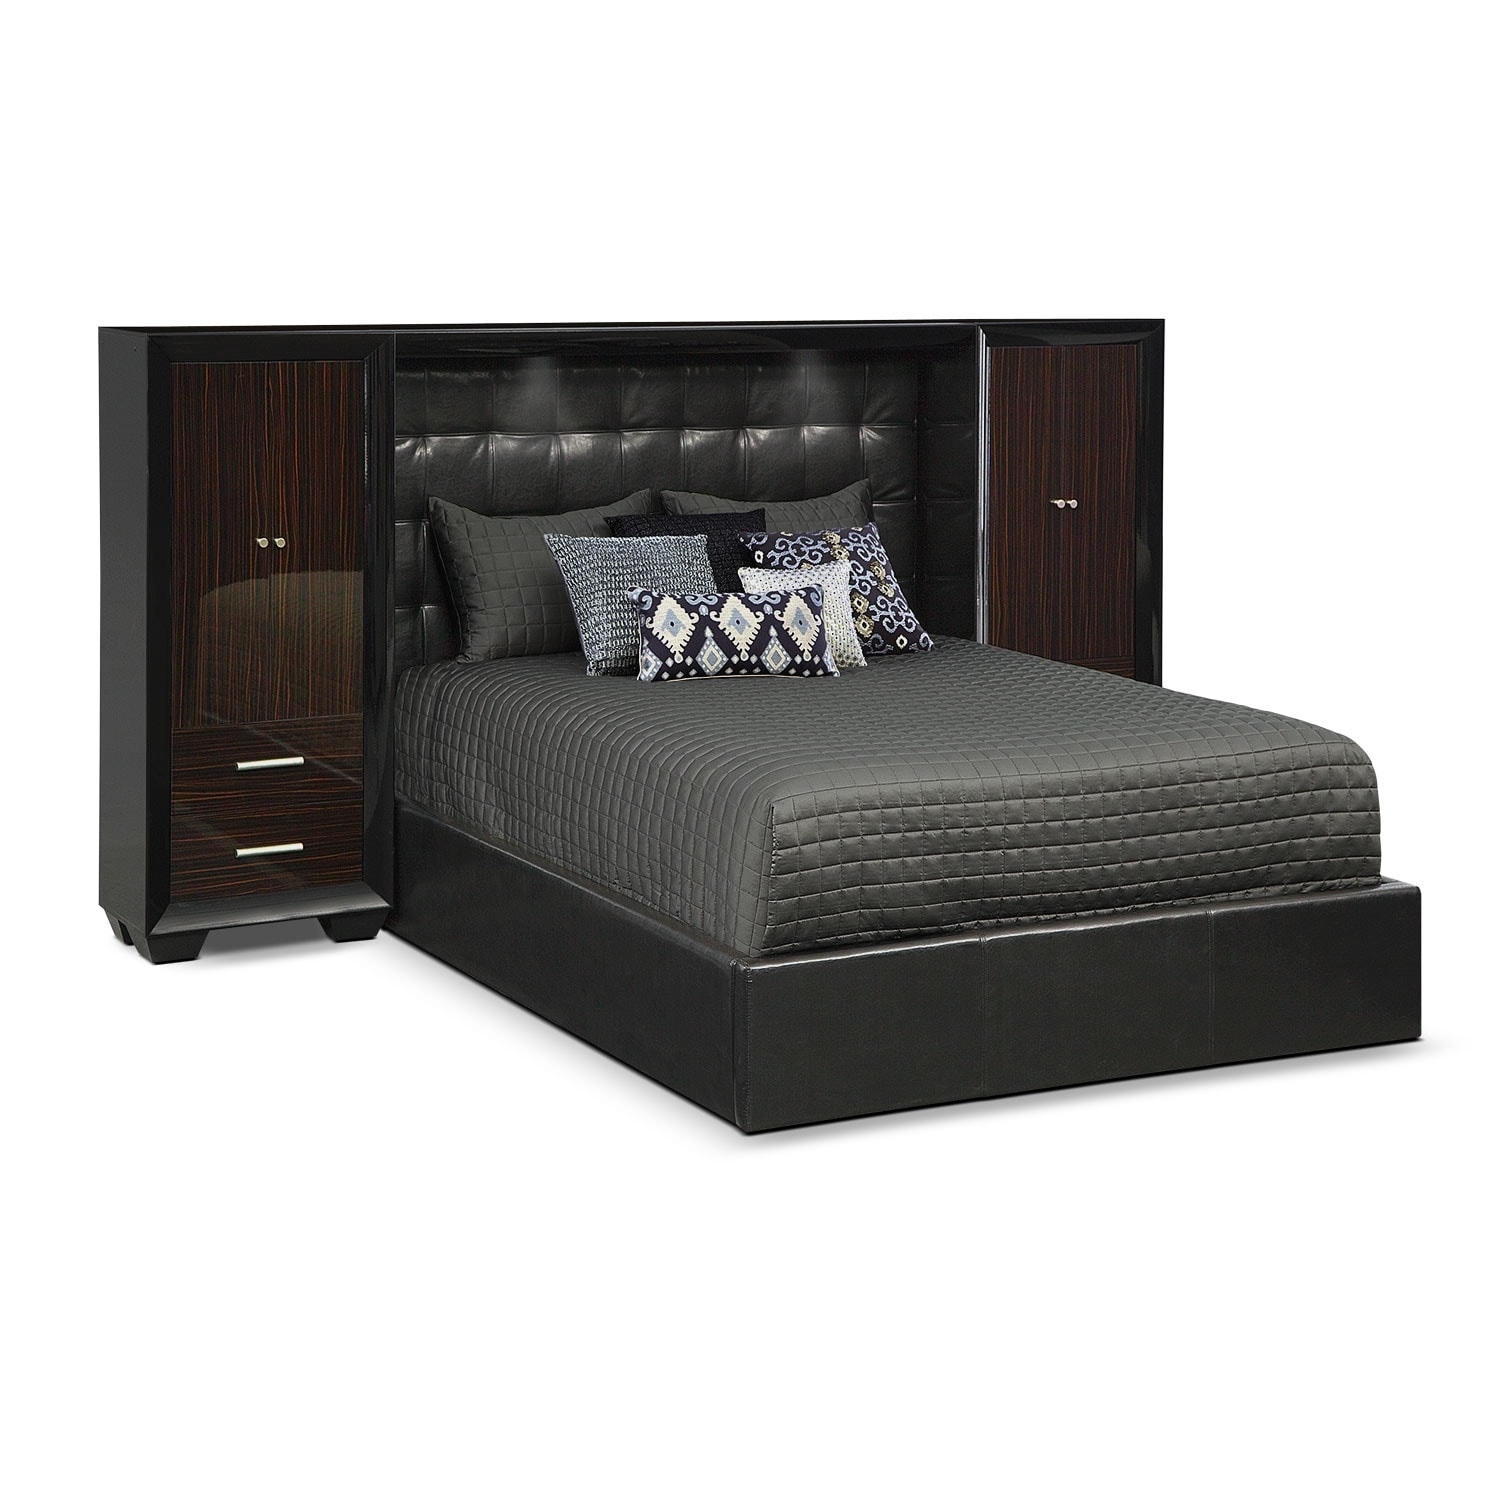 Pier Wall Bedroom Furniture Similiar King Pier Wall Bed Keywords